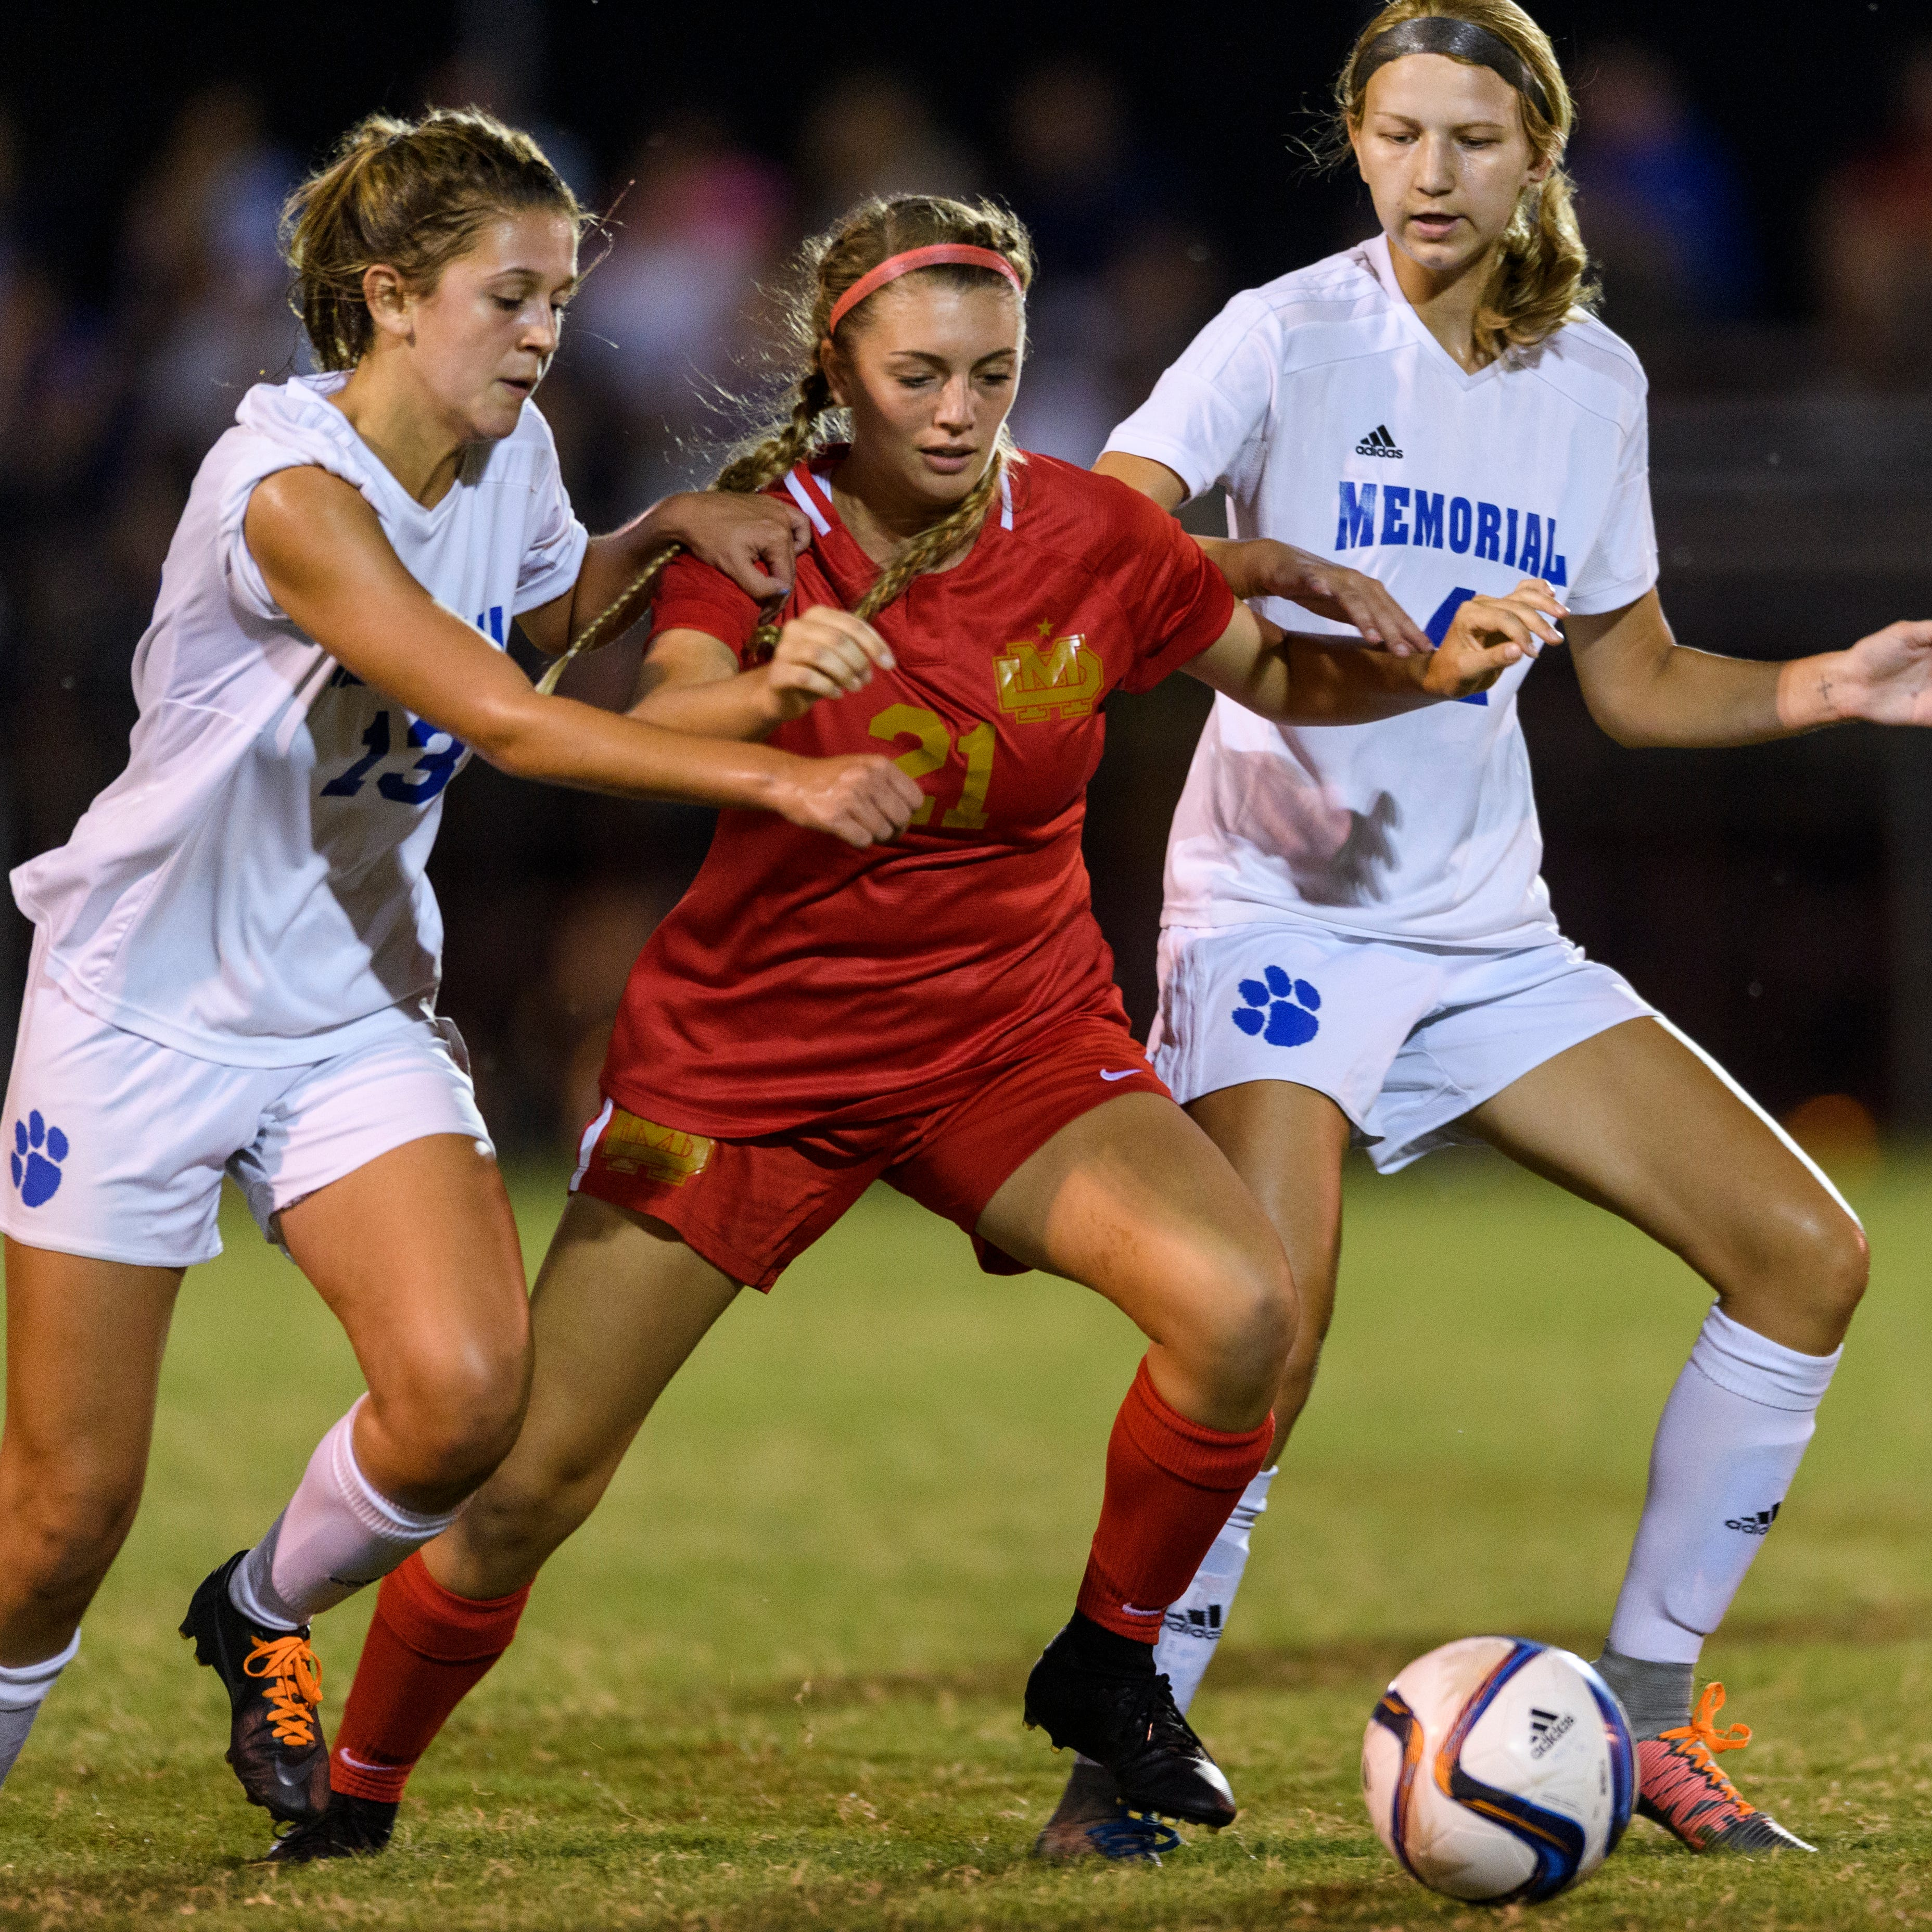 IHSAA announces high school boys and girls soccer sectional pairings